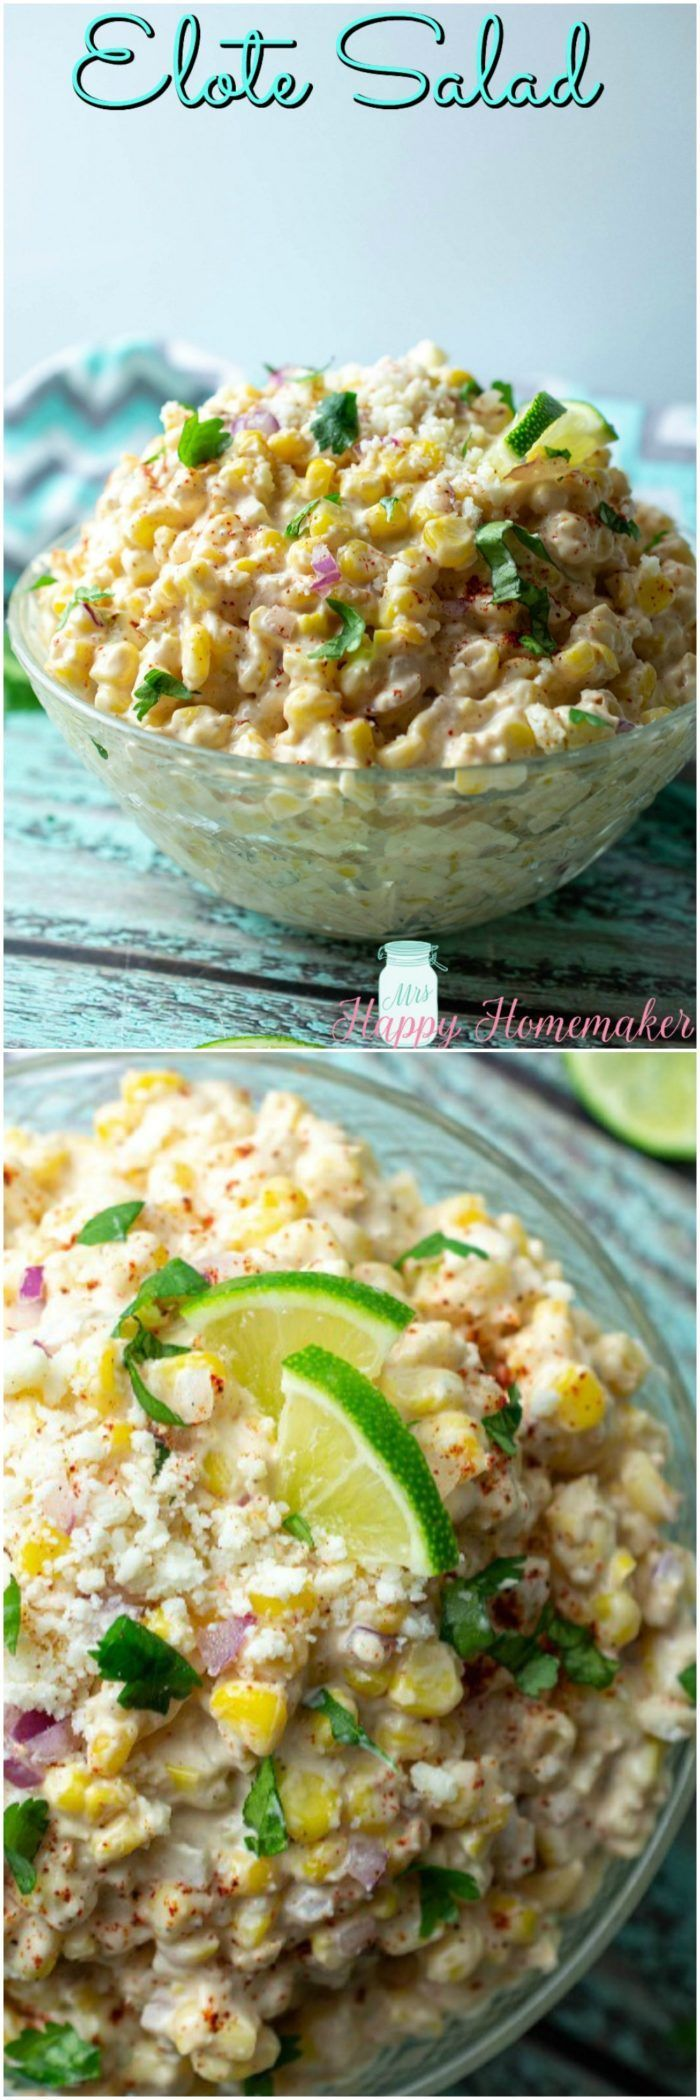 Mexican Street Corn Salad (Elote Salad) - Mrs Happy Homemaker #mexicanstreetcorn